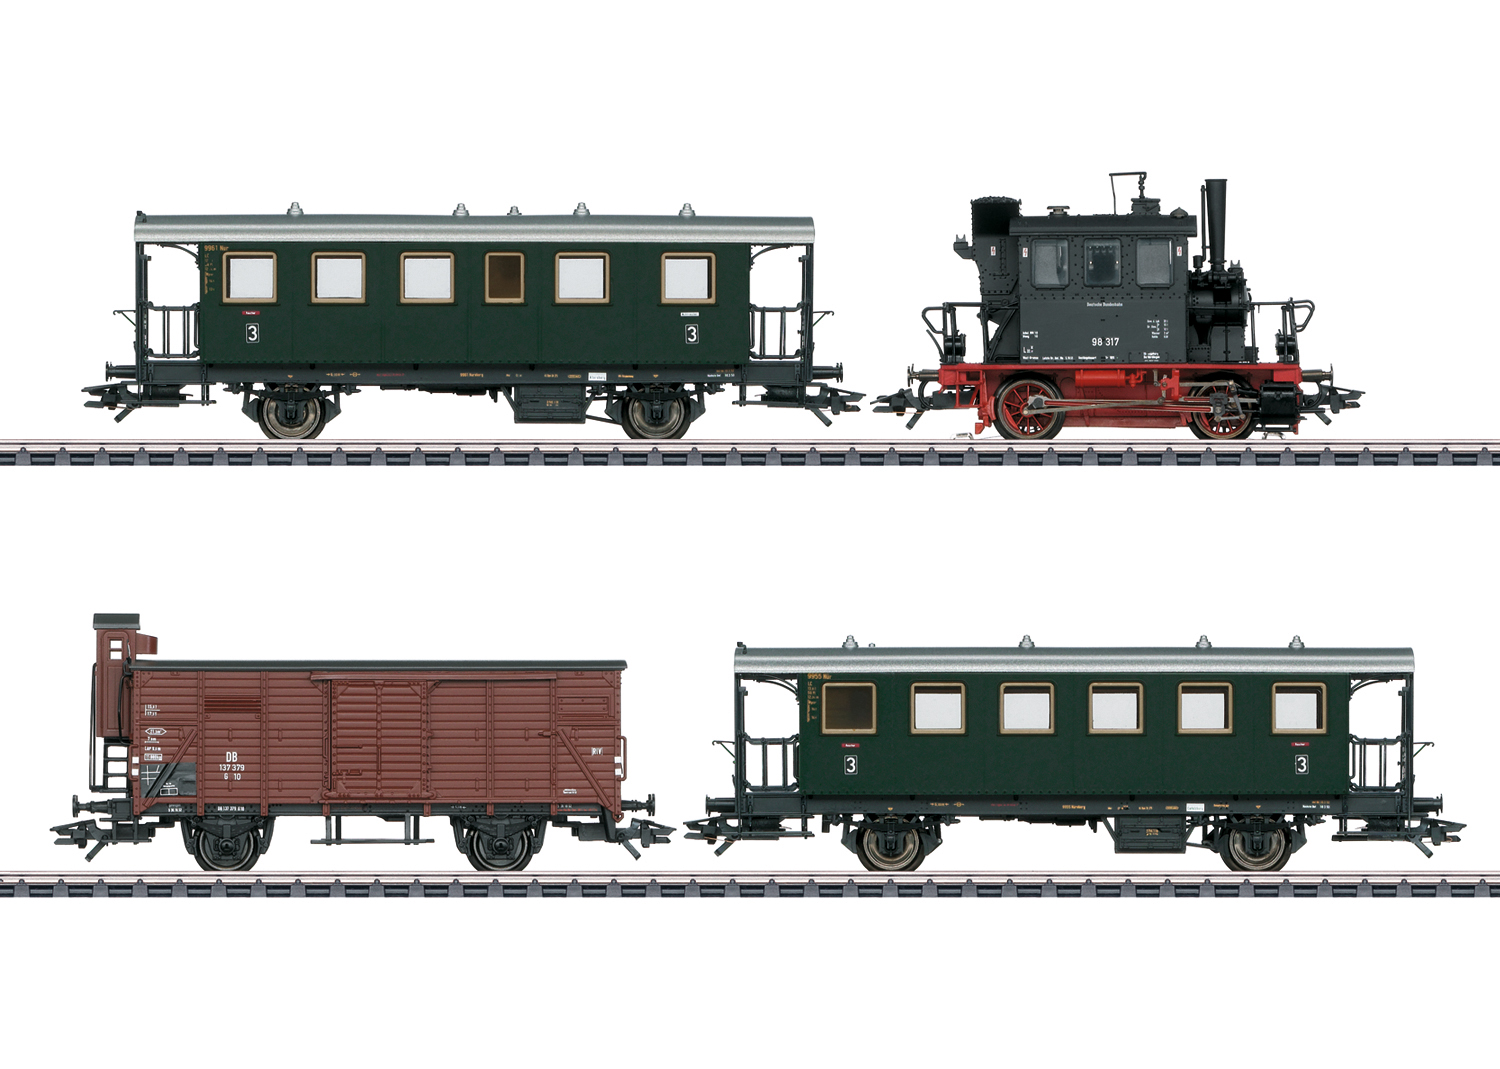 Passenger Train with a Freight Car (PmG)